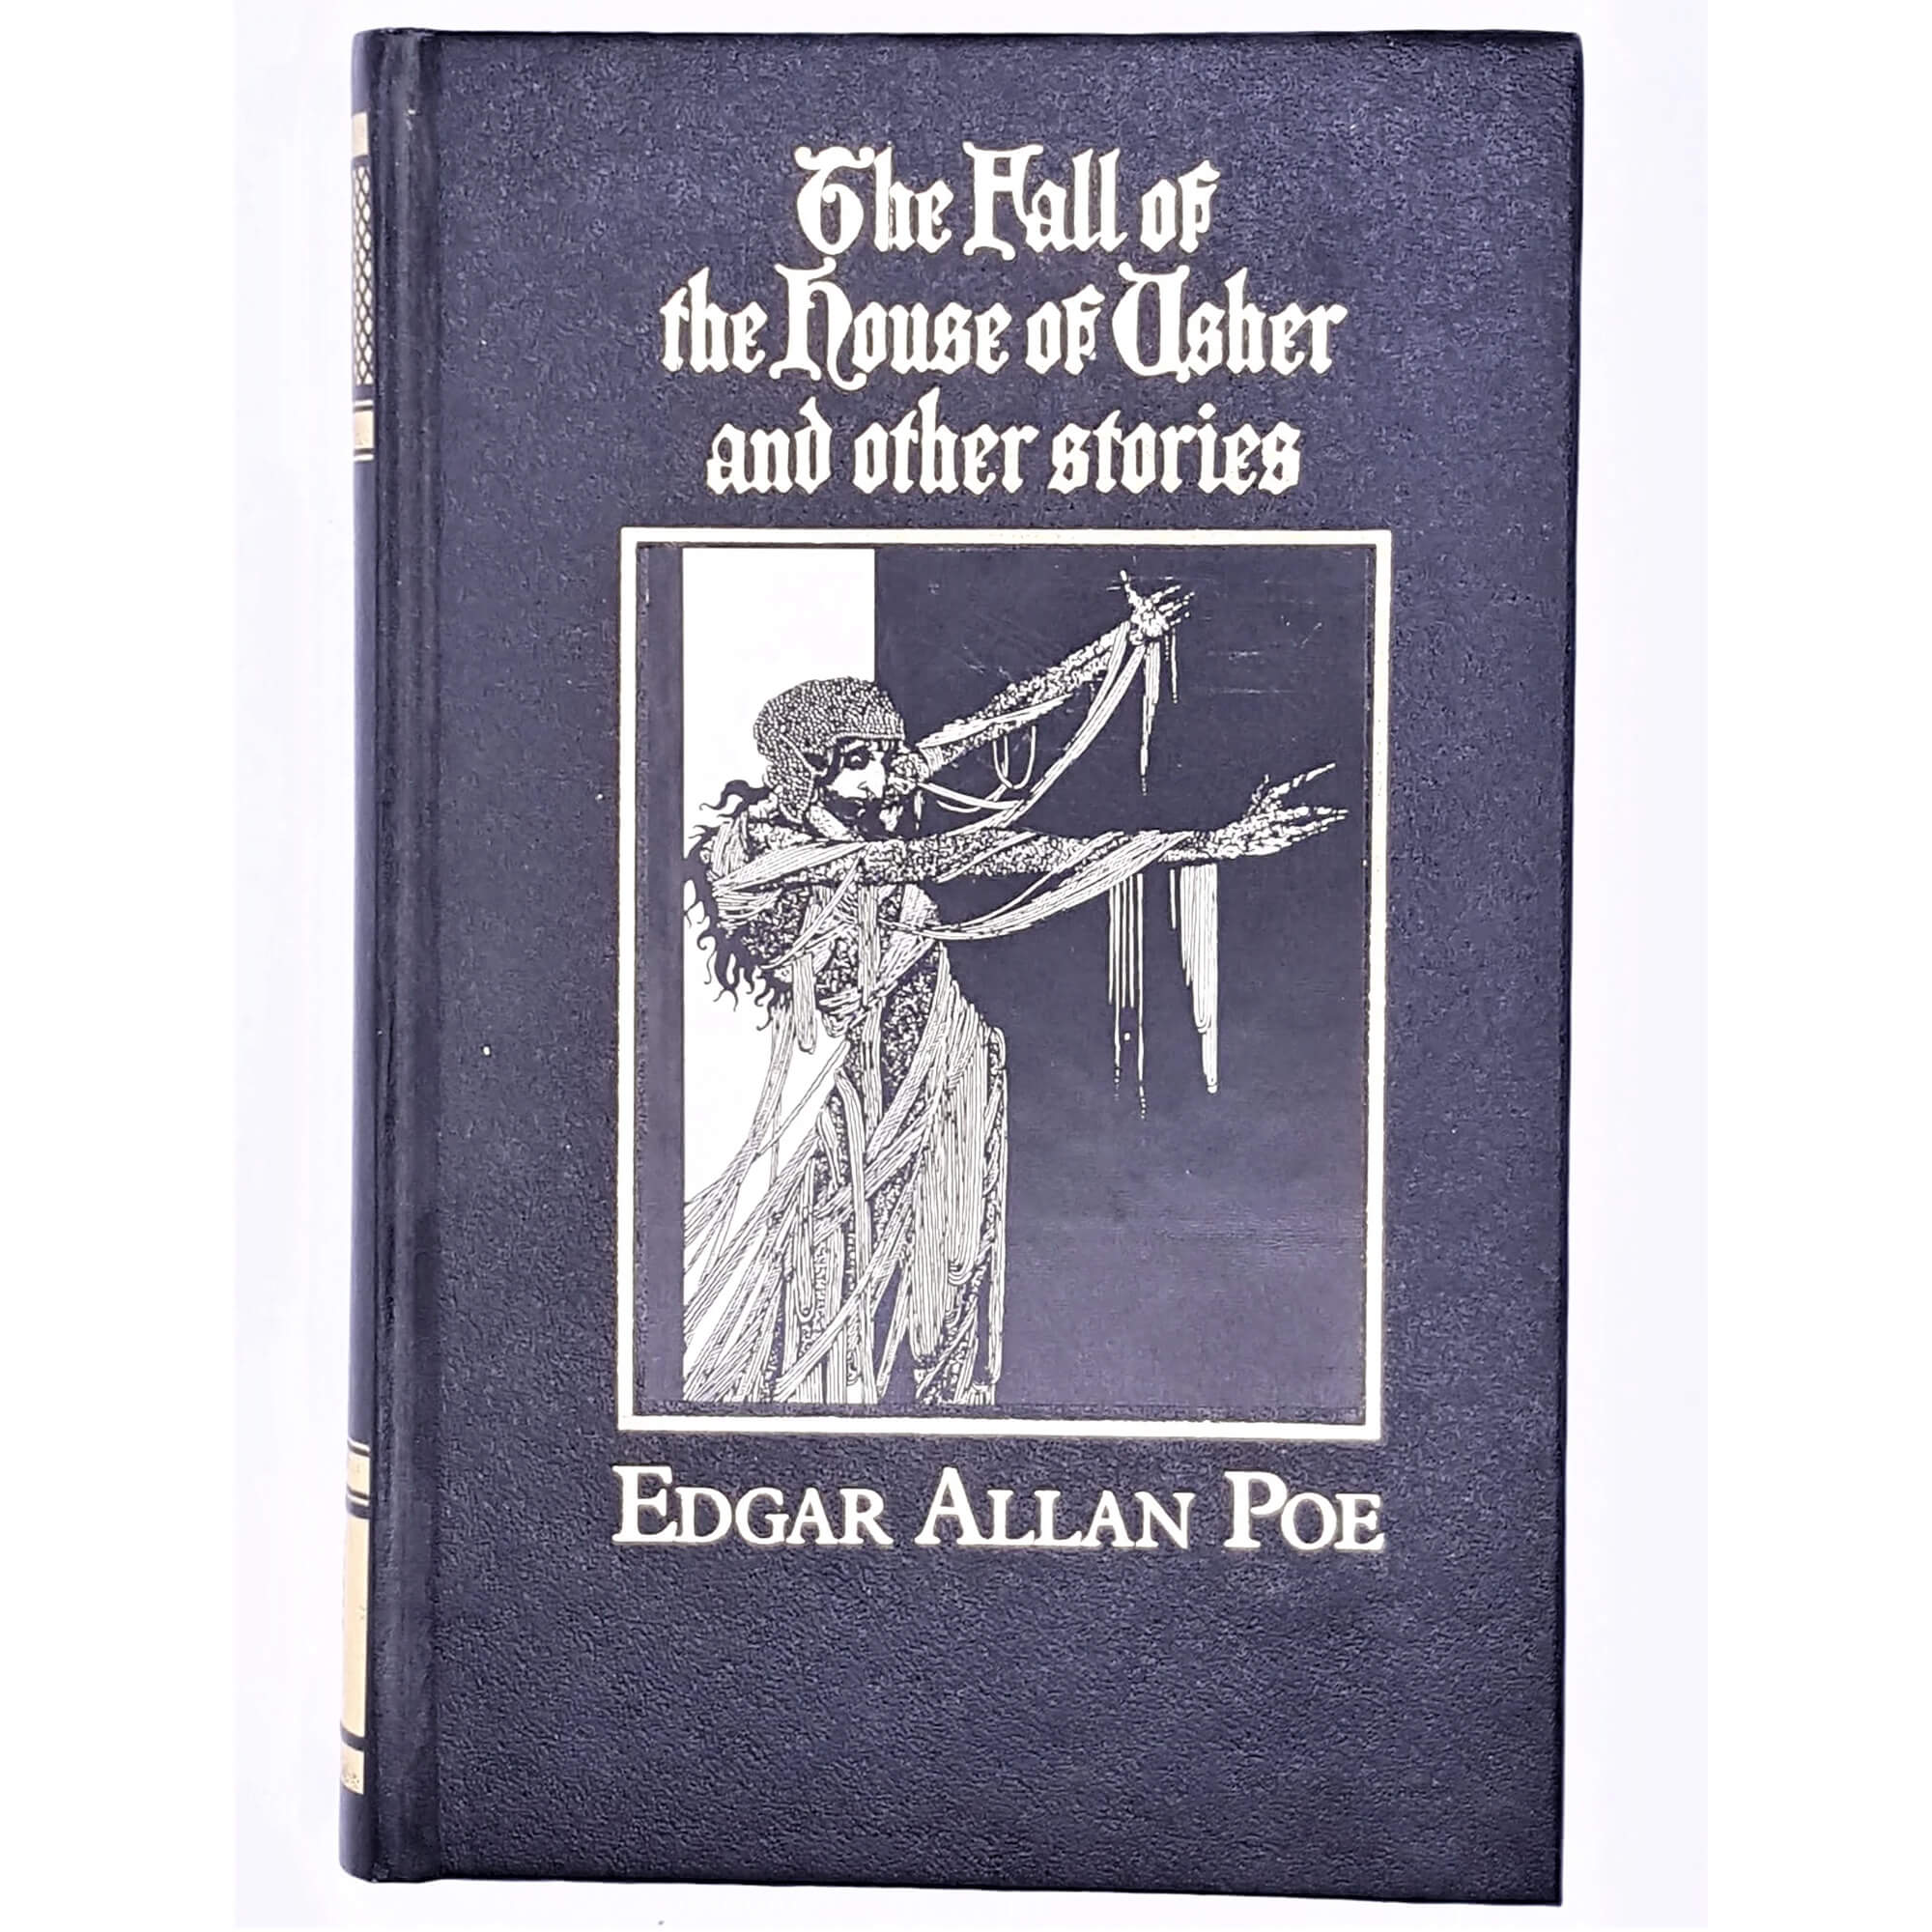 Edgar Allan Poe's The Fall of the House of Usher and Other Stories 1986